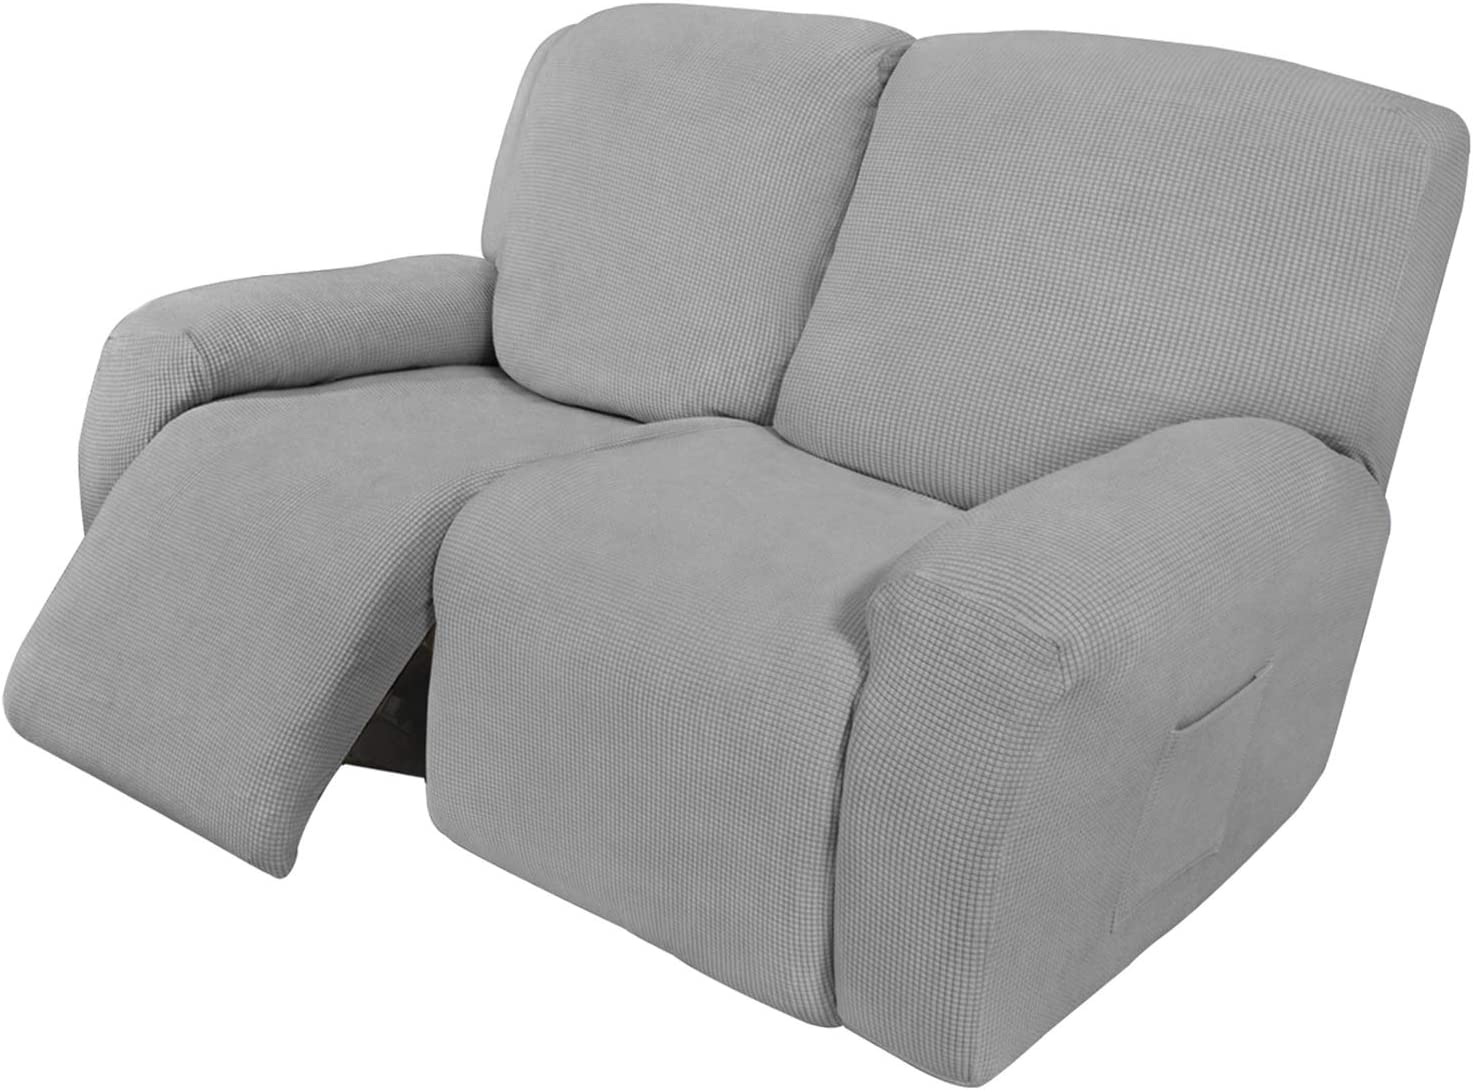 Easy-Going 6 Pieces Recliner Loveseat Stretch Sofa Slipcover Sofa Cover Furniture Protector Couch Soft with Elastic Bottom Kids, Spandex Jacquard Fabric Small Checks Light Gray